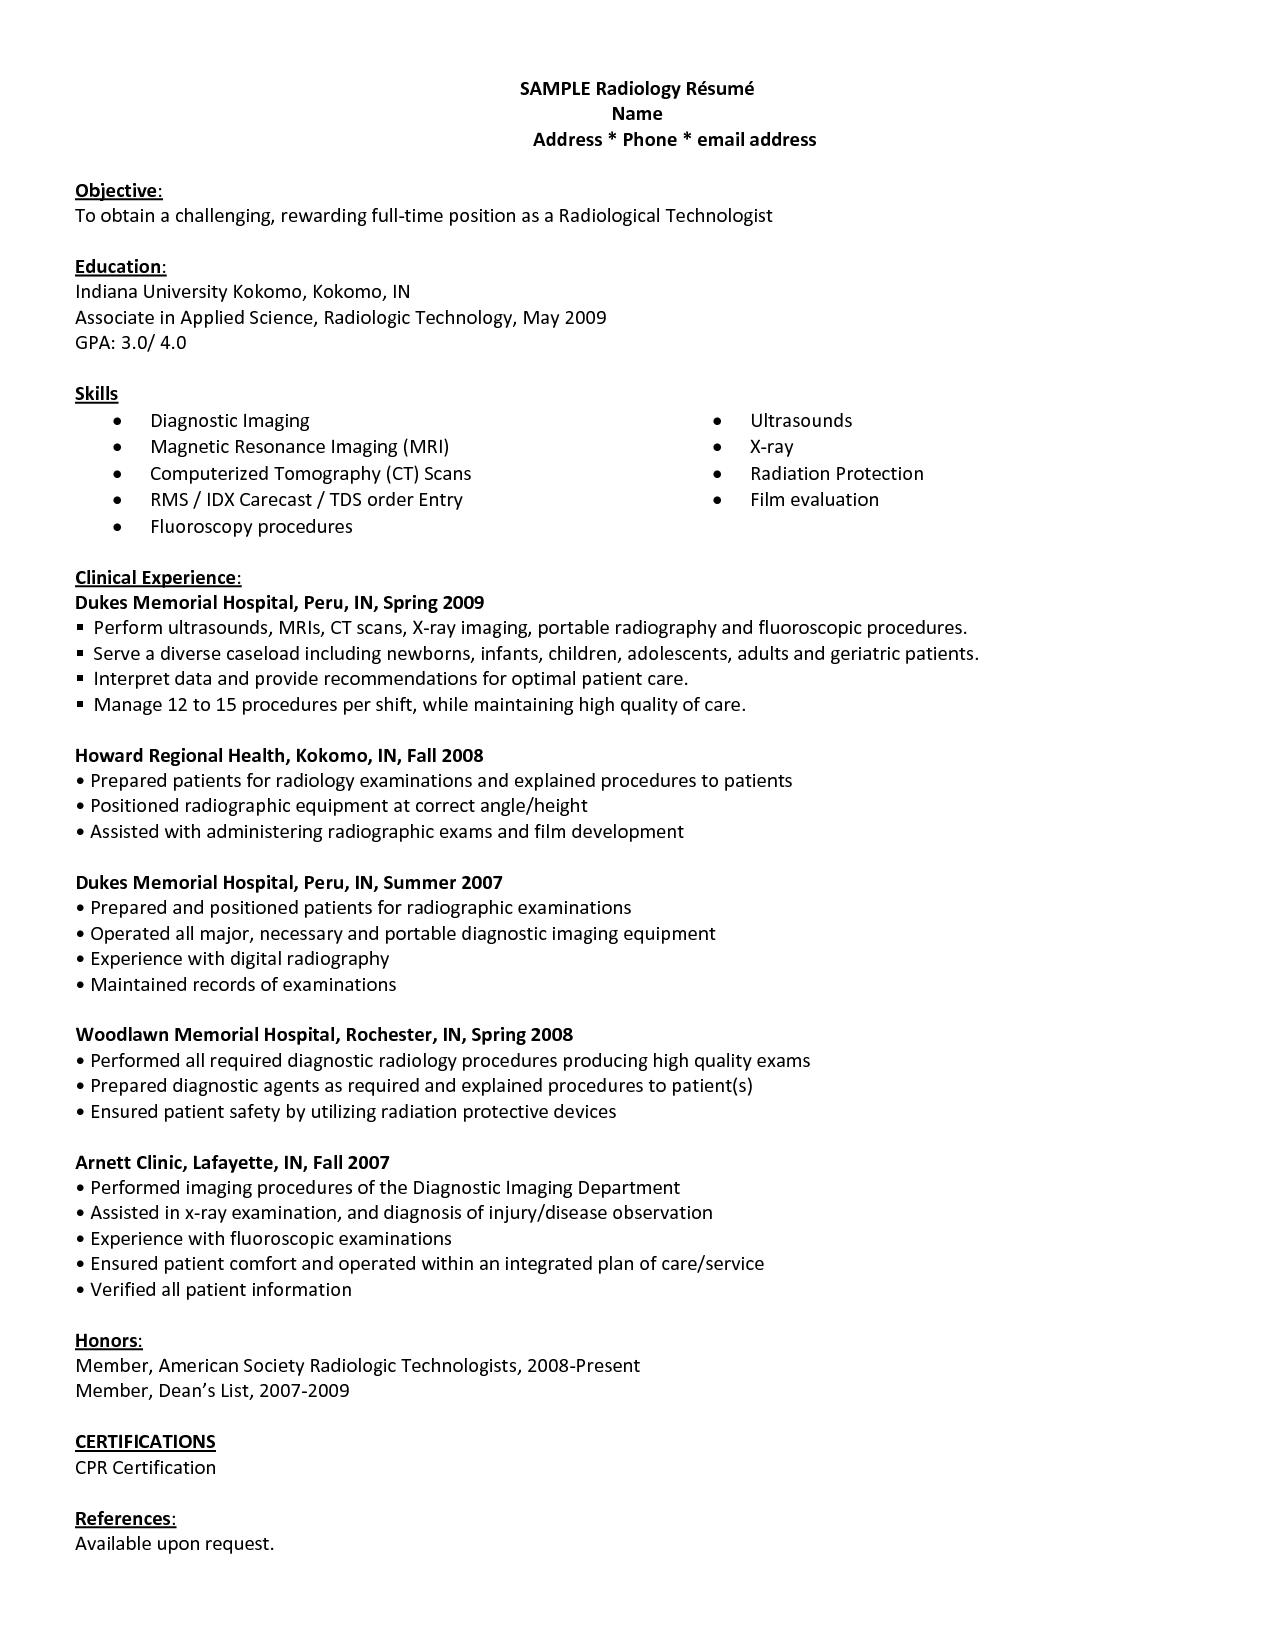 Resume Sample Radiologic Technologist  Home Design Idea